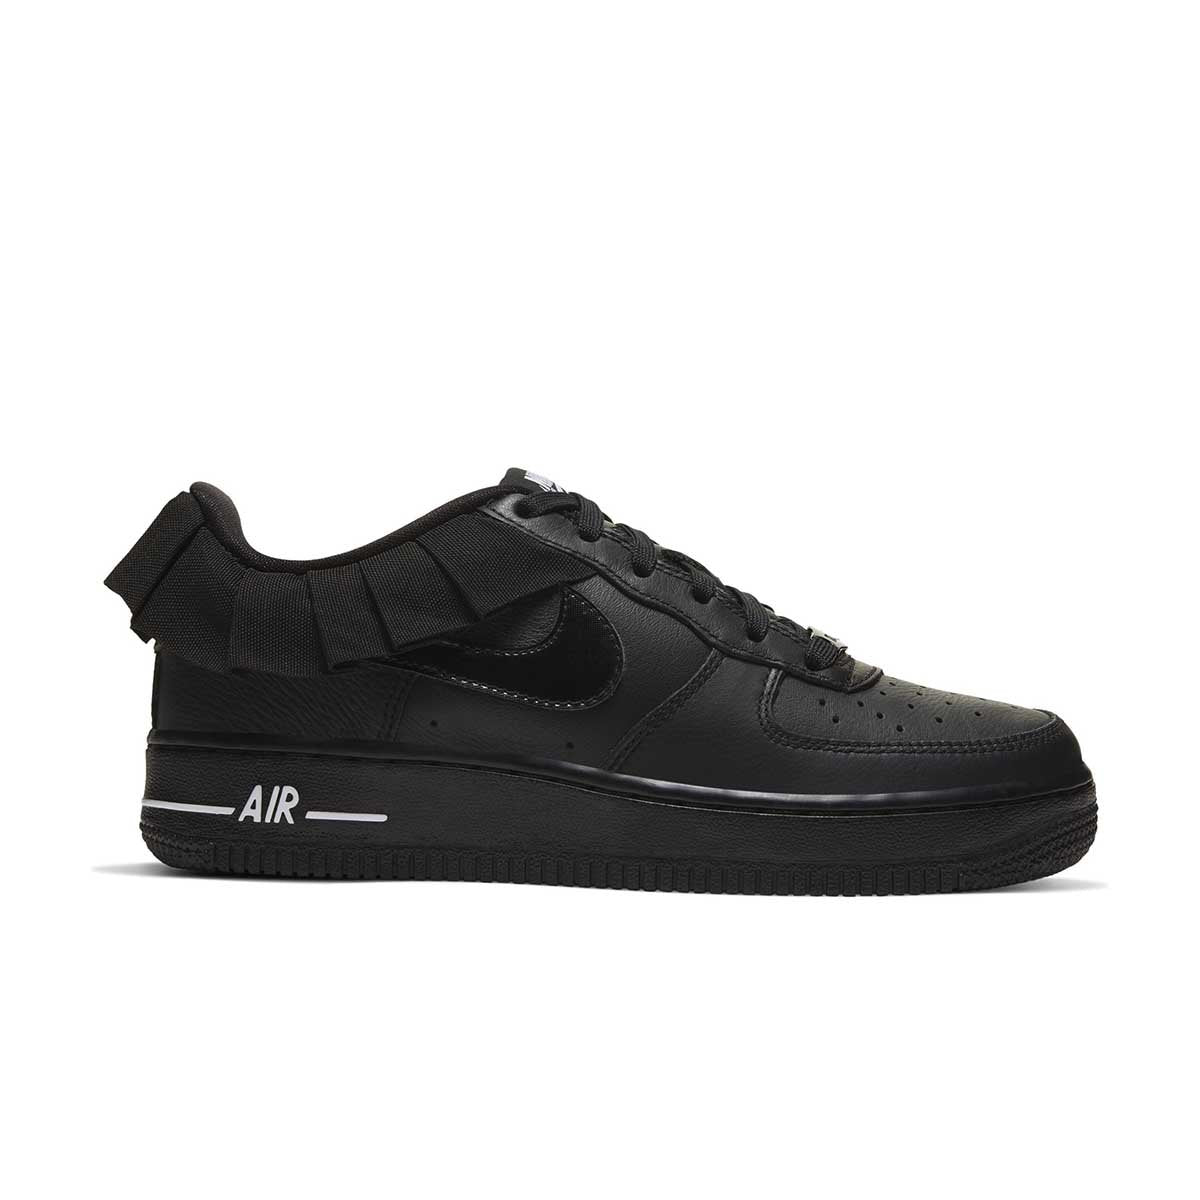 Nike Air Force 1 LV8 Ruffle